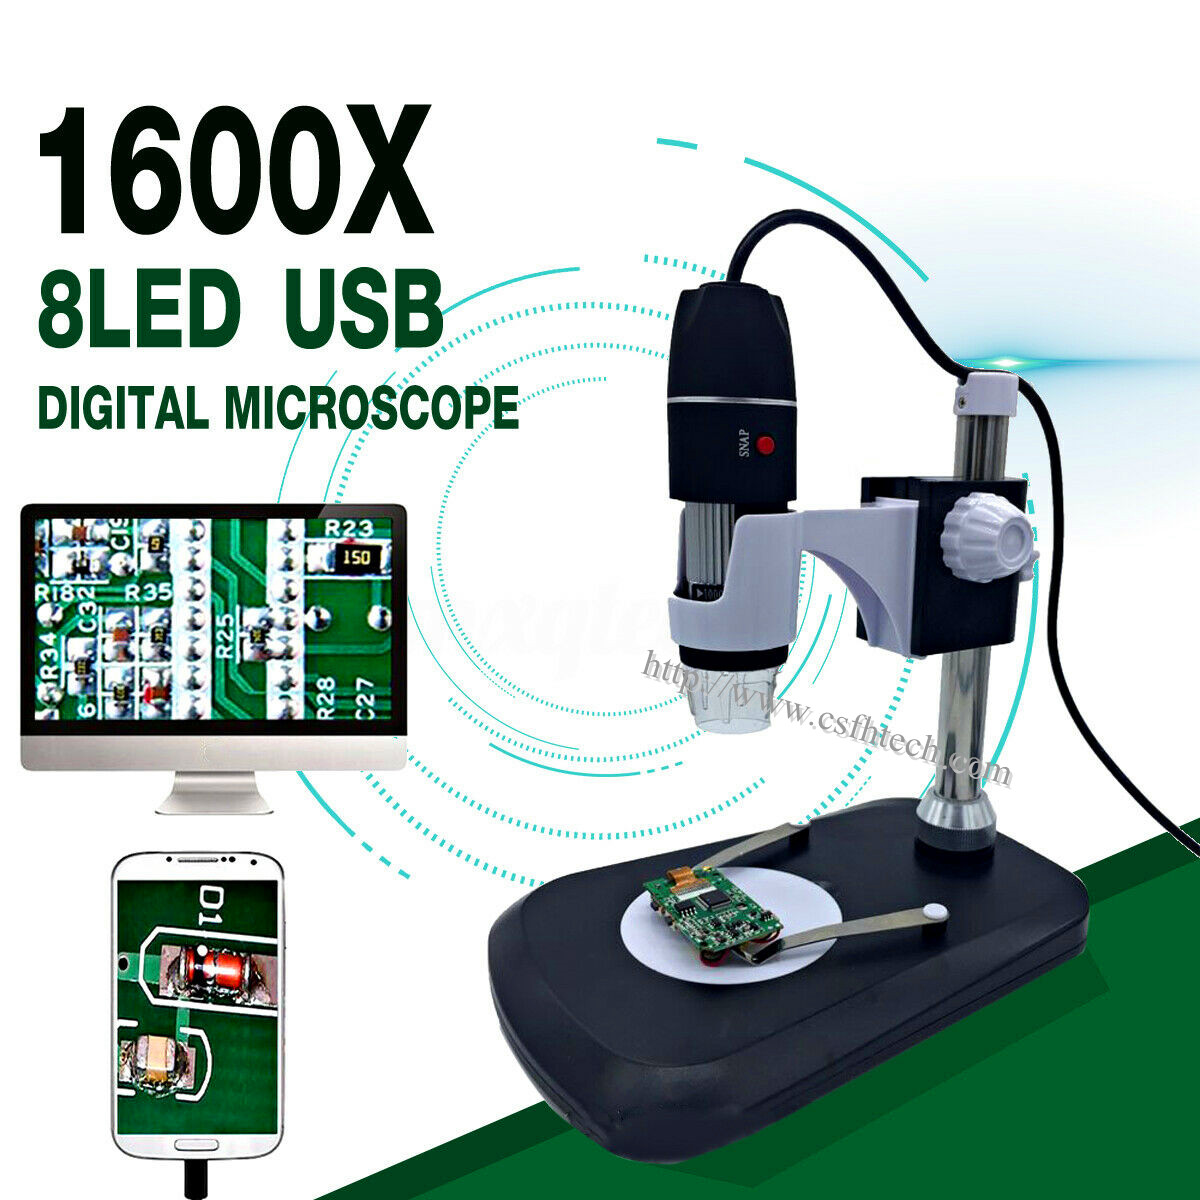 2020 The Best Quality1600X 8 LED Zoom USB Digital Microscope Magnifier Endoscope Camera +Video Made In China Factory